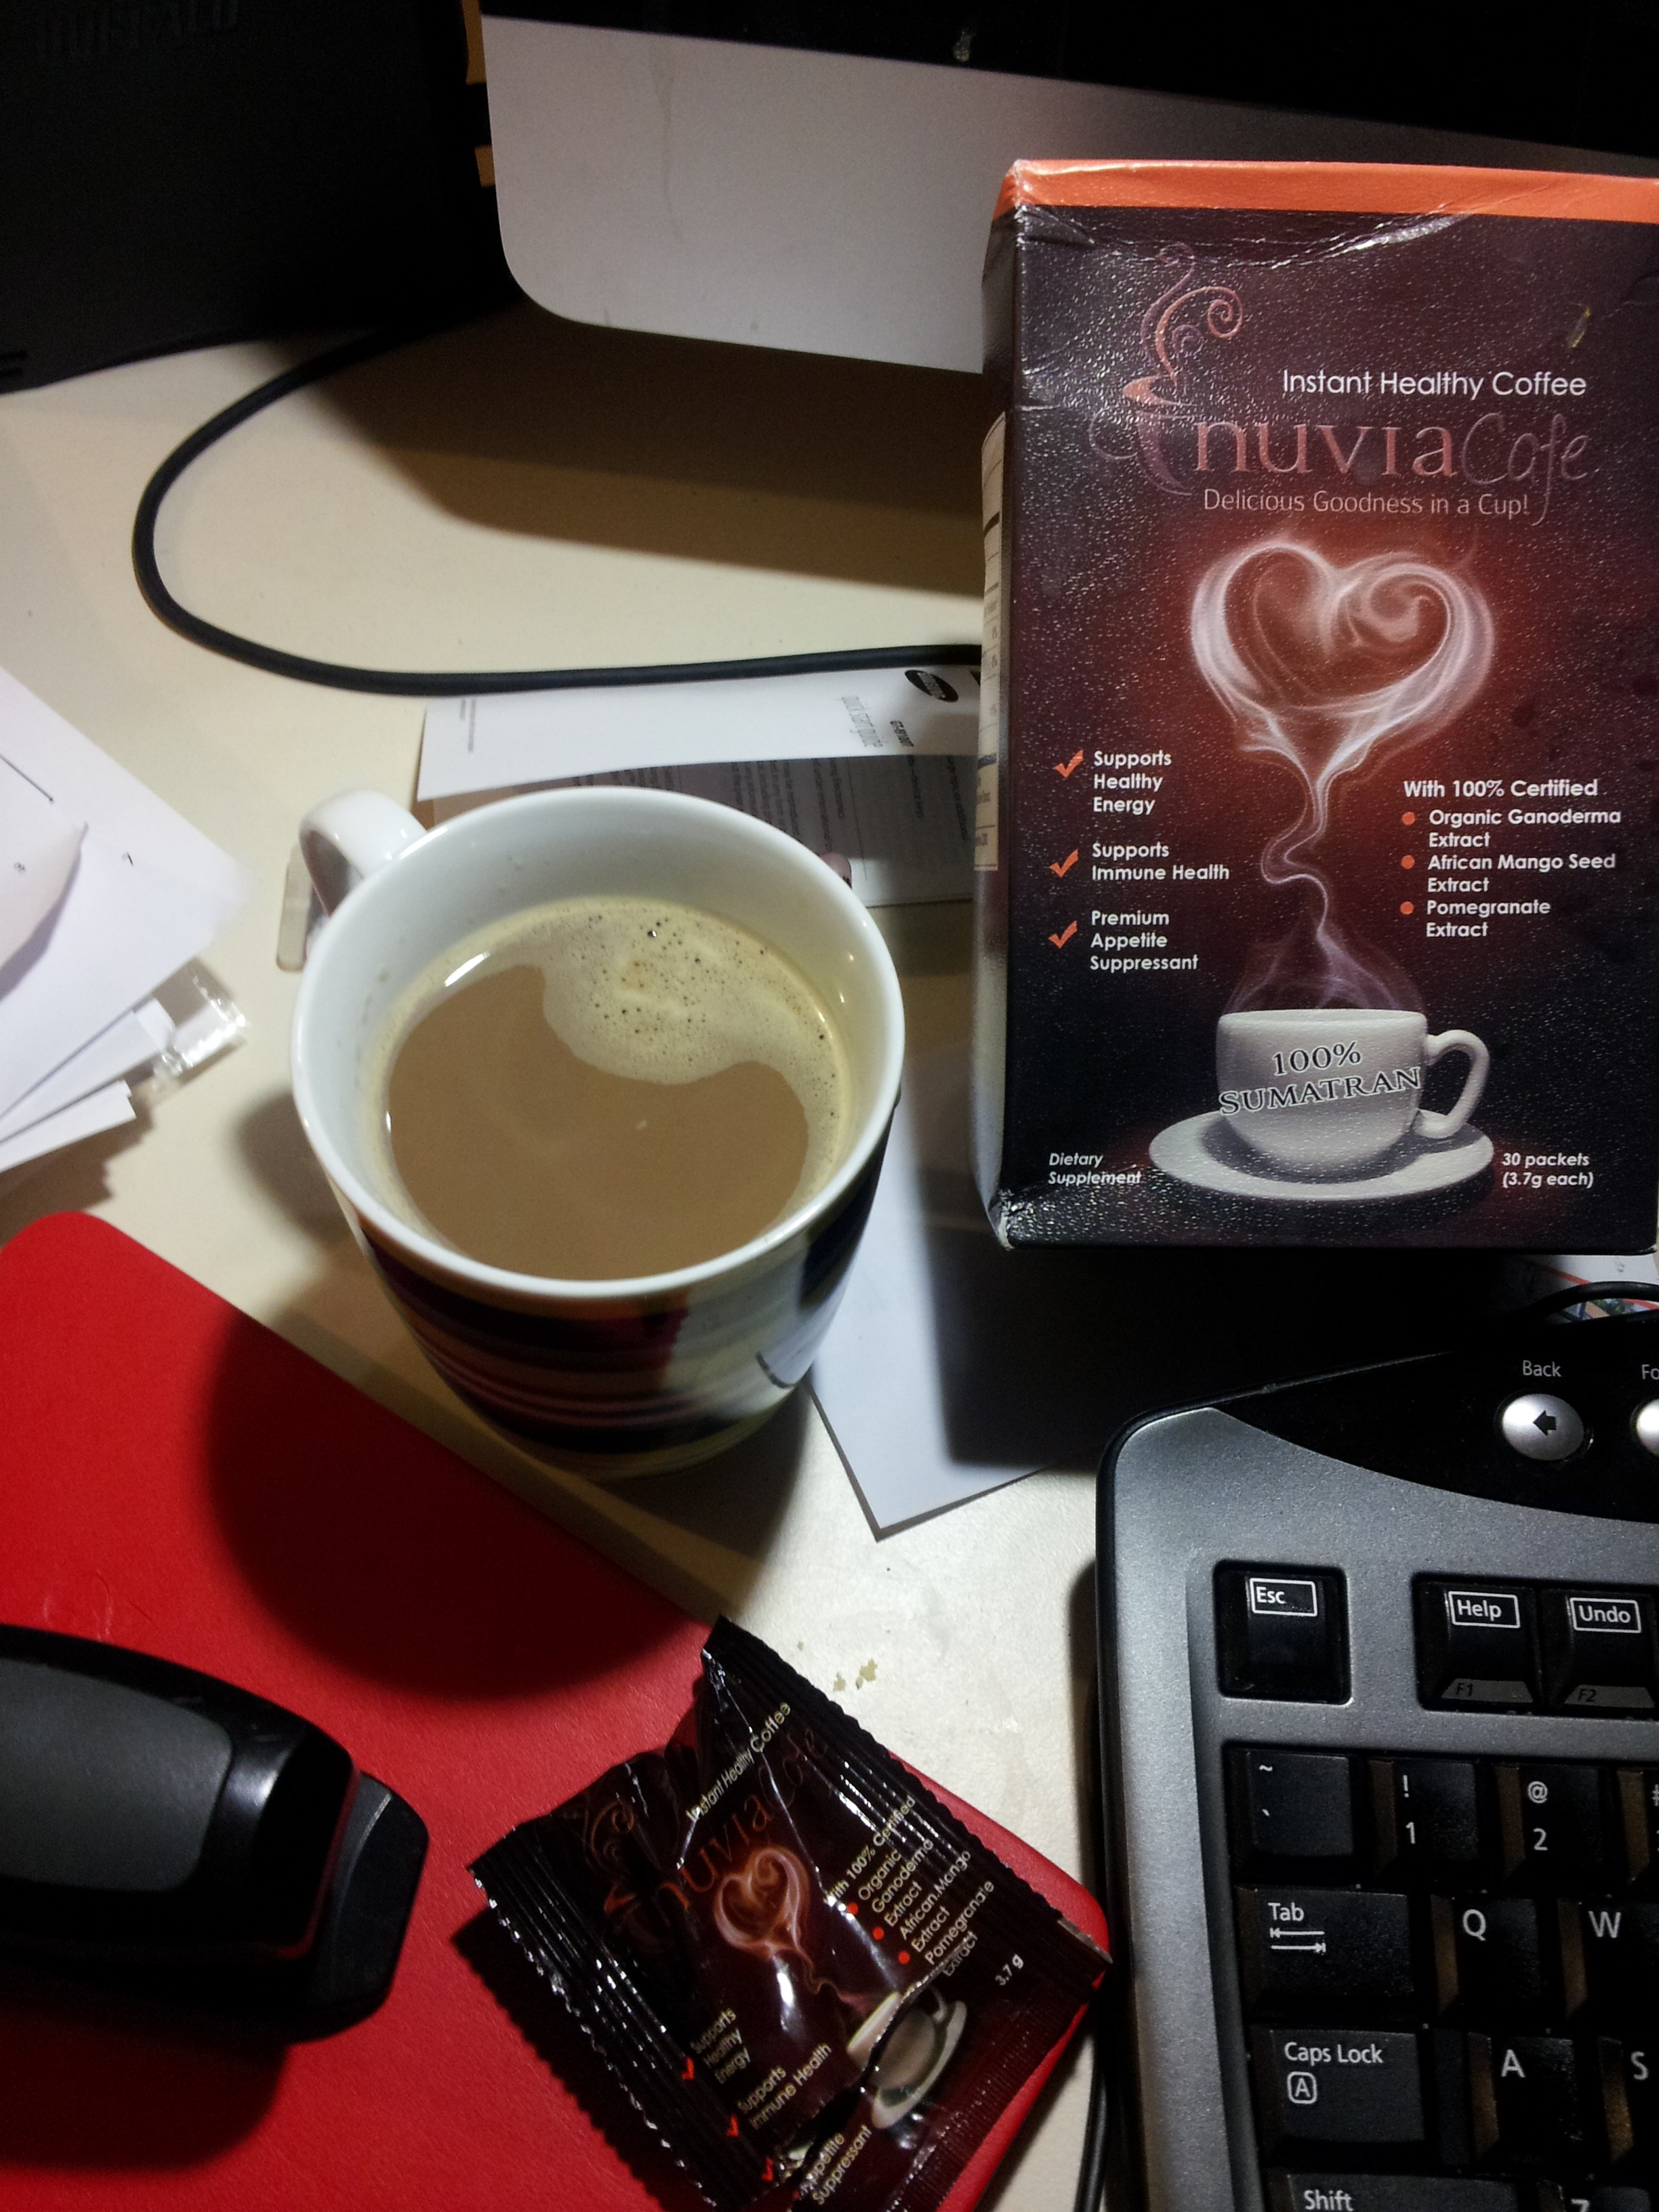 Ganoderma in coffee from Nuvia Café the aroma caffe as instant health coffee